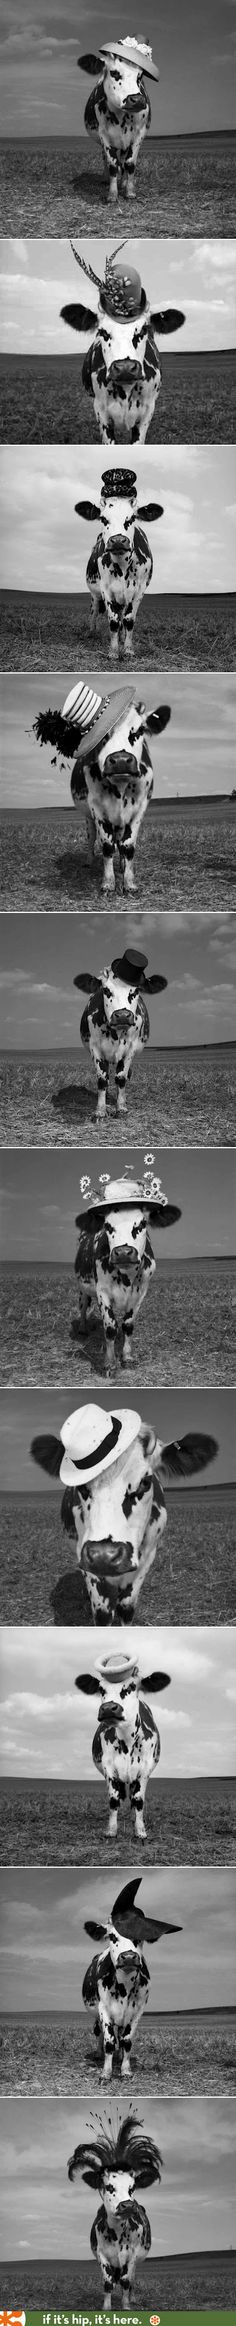 images of Cows in Hats.